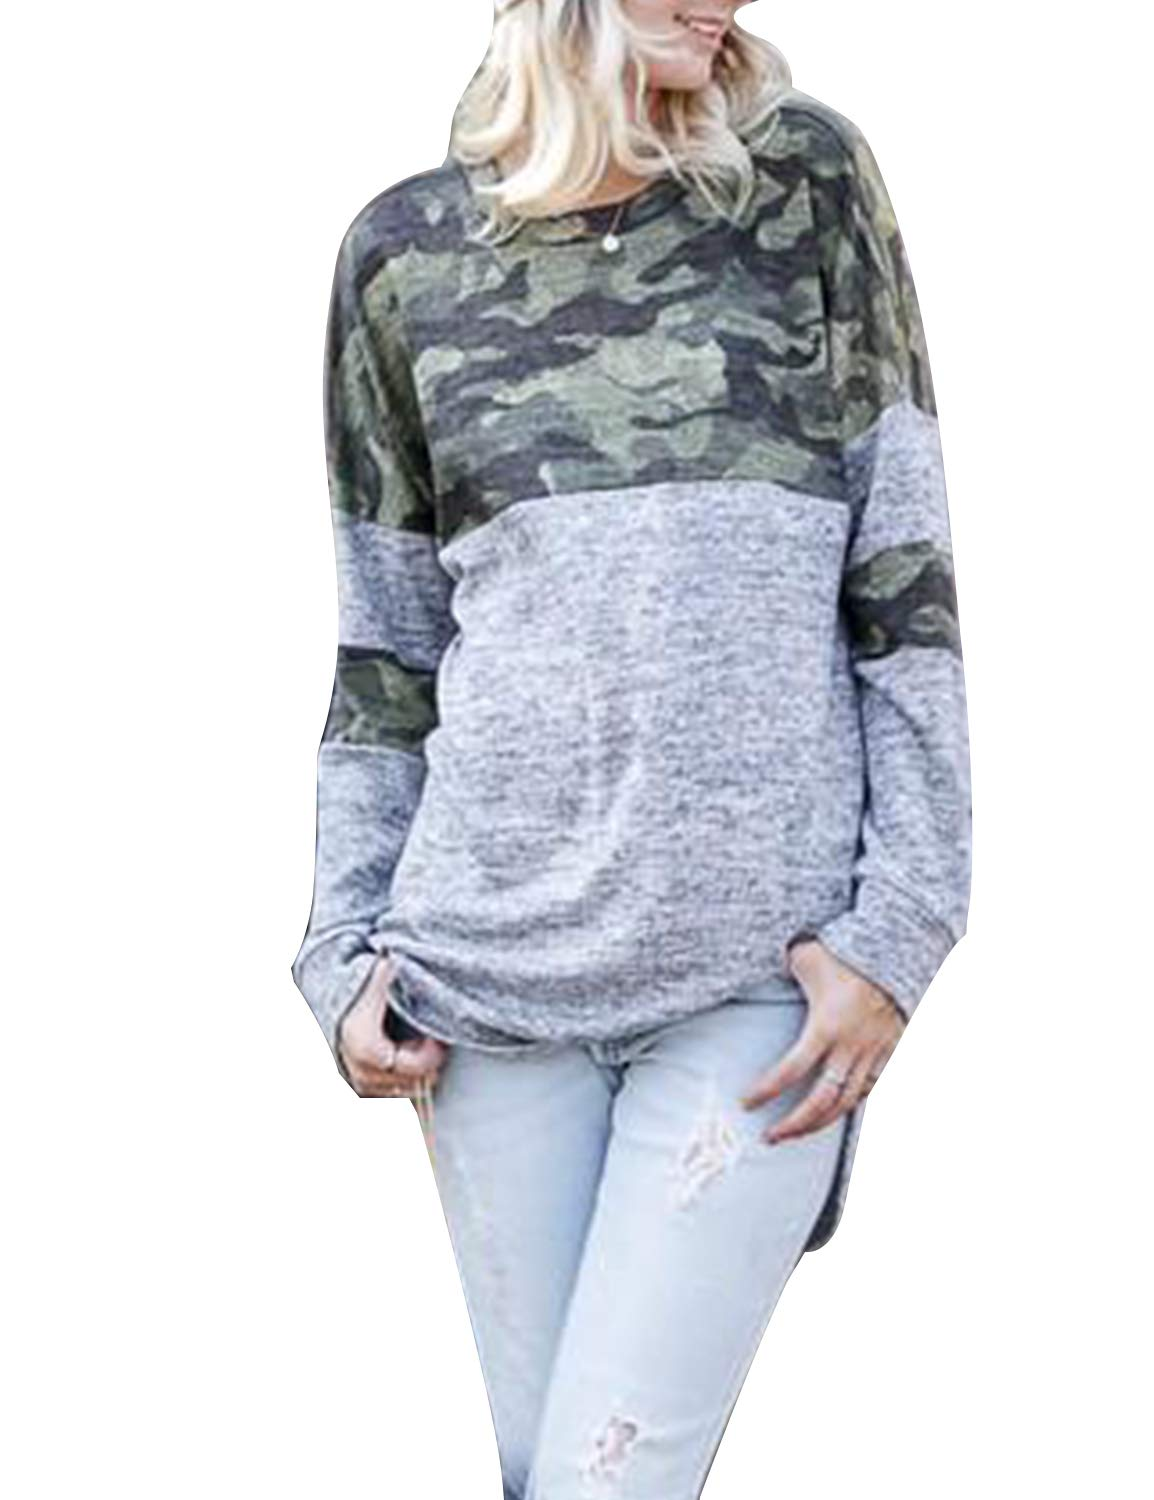 Love this Camo shirt!!